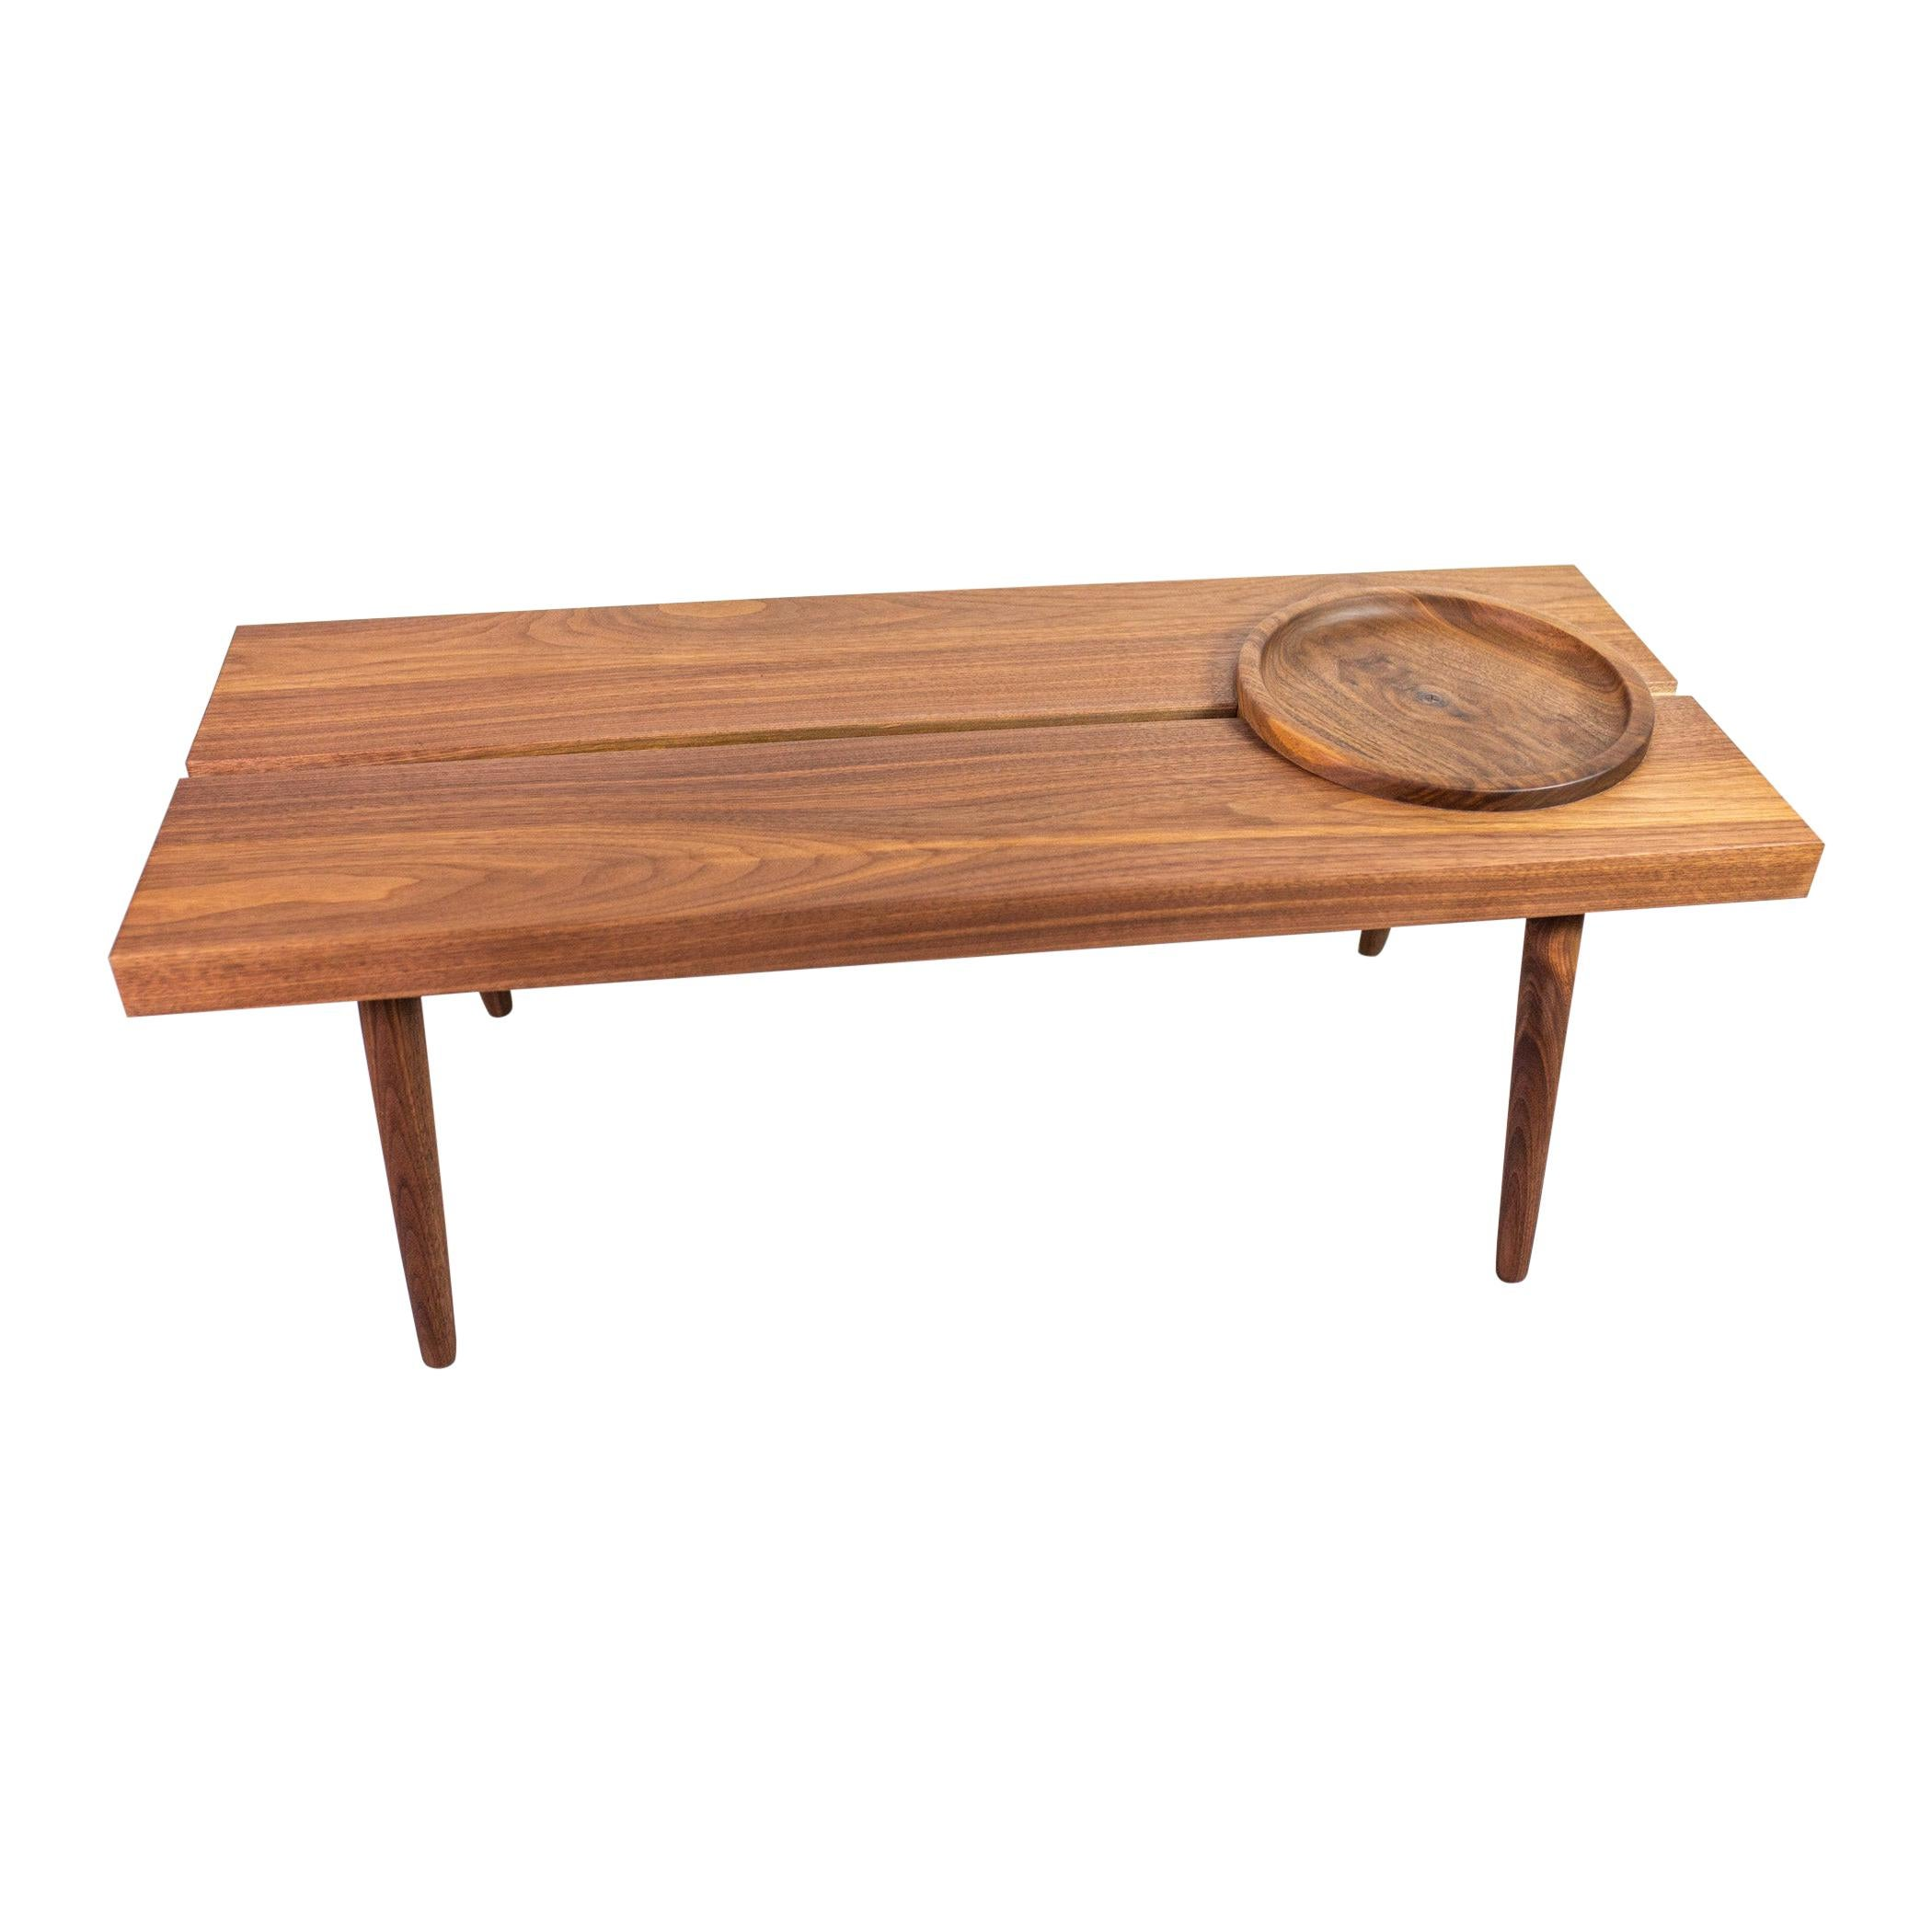 Studio Catch it All Bench or Coffee Table by Michael Rozell, USA, 2020